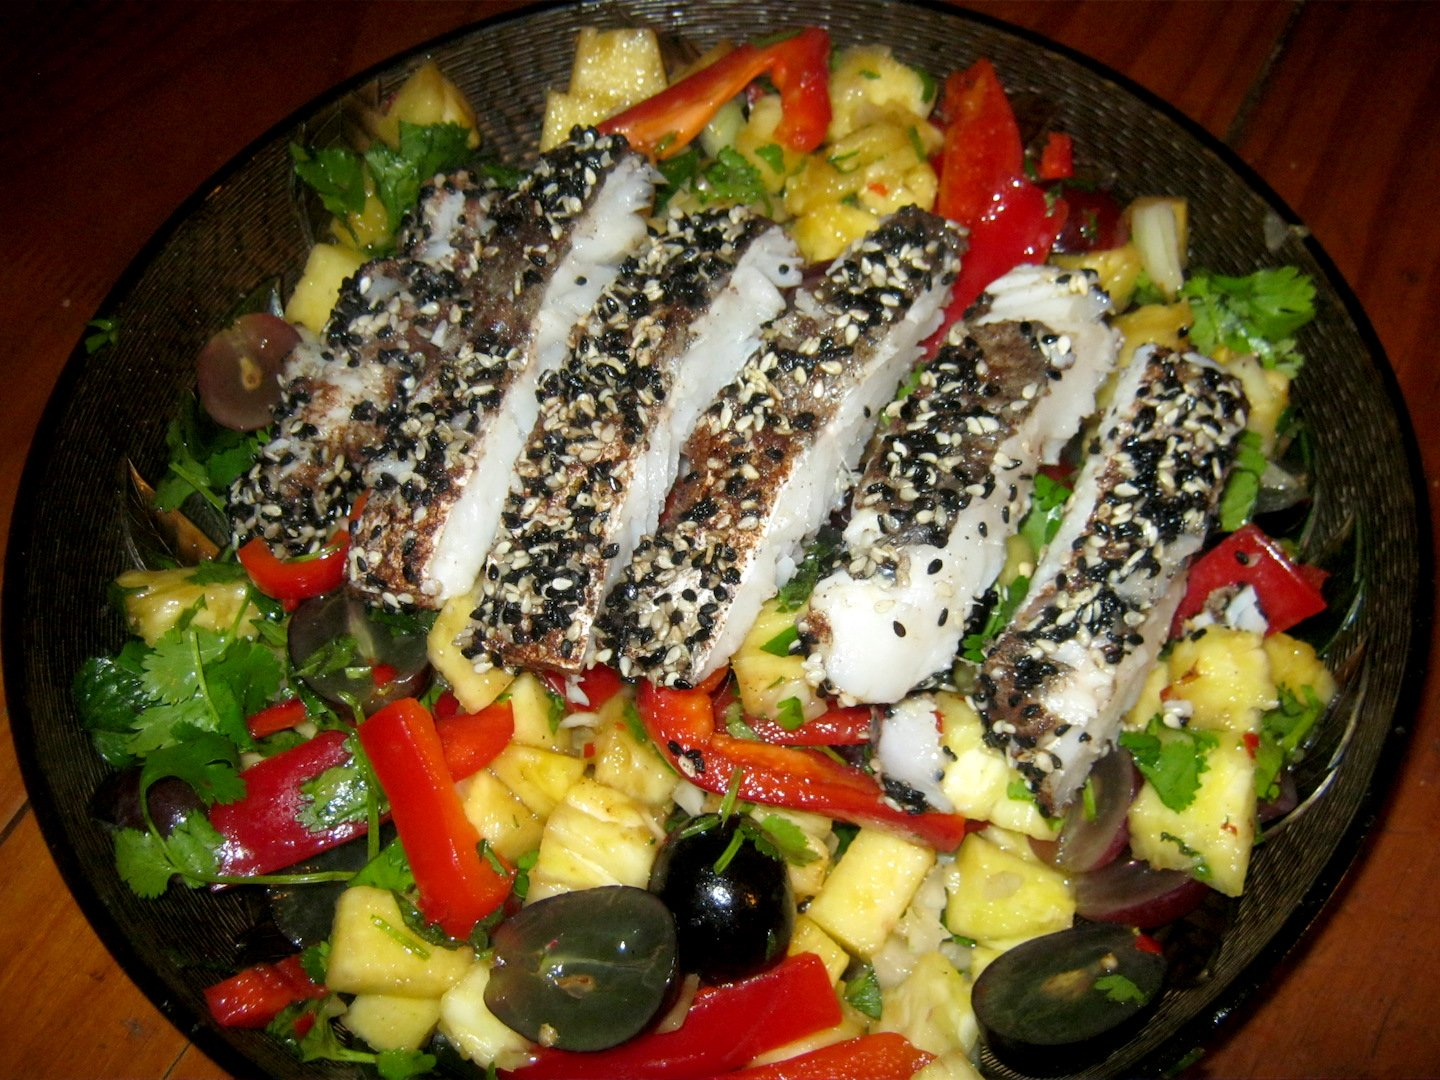 Hake in Cinnamon Sesame Crust on a bed of pineapple grape chili salad ion a serving tray